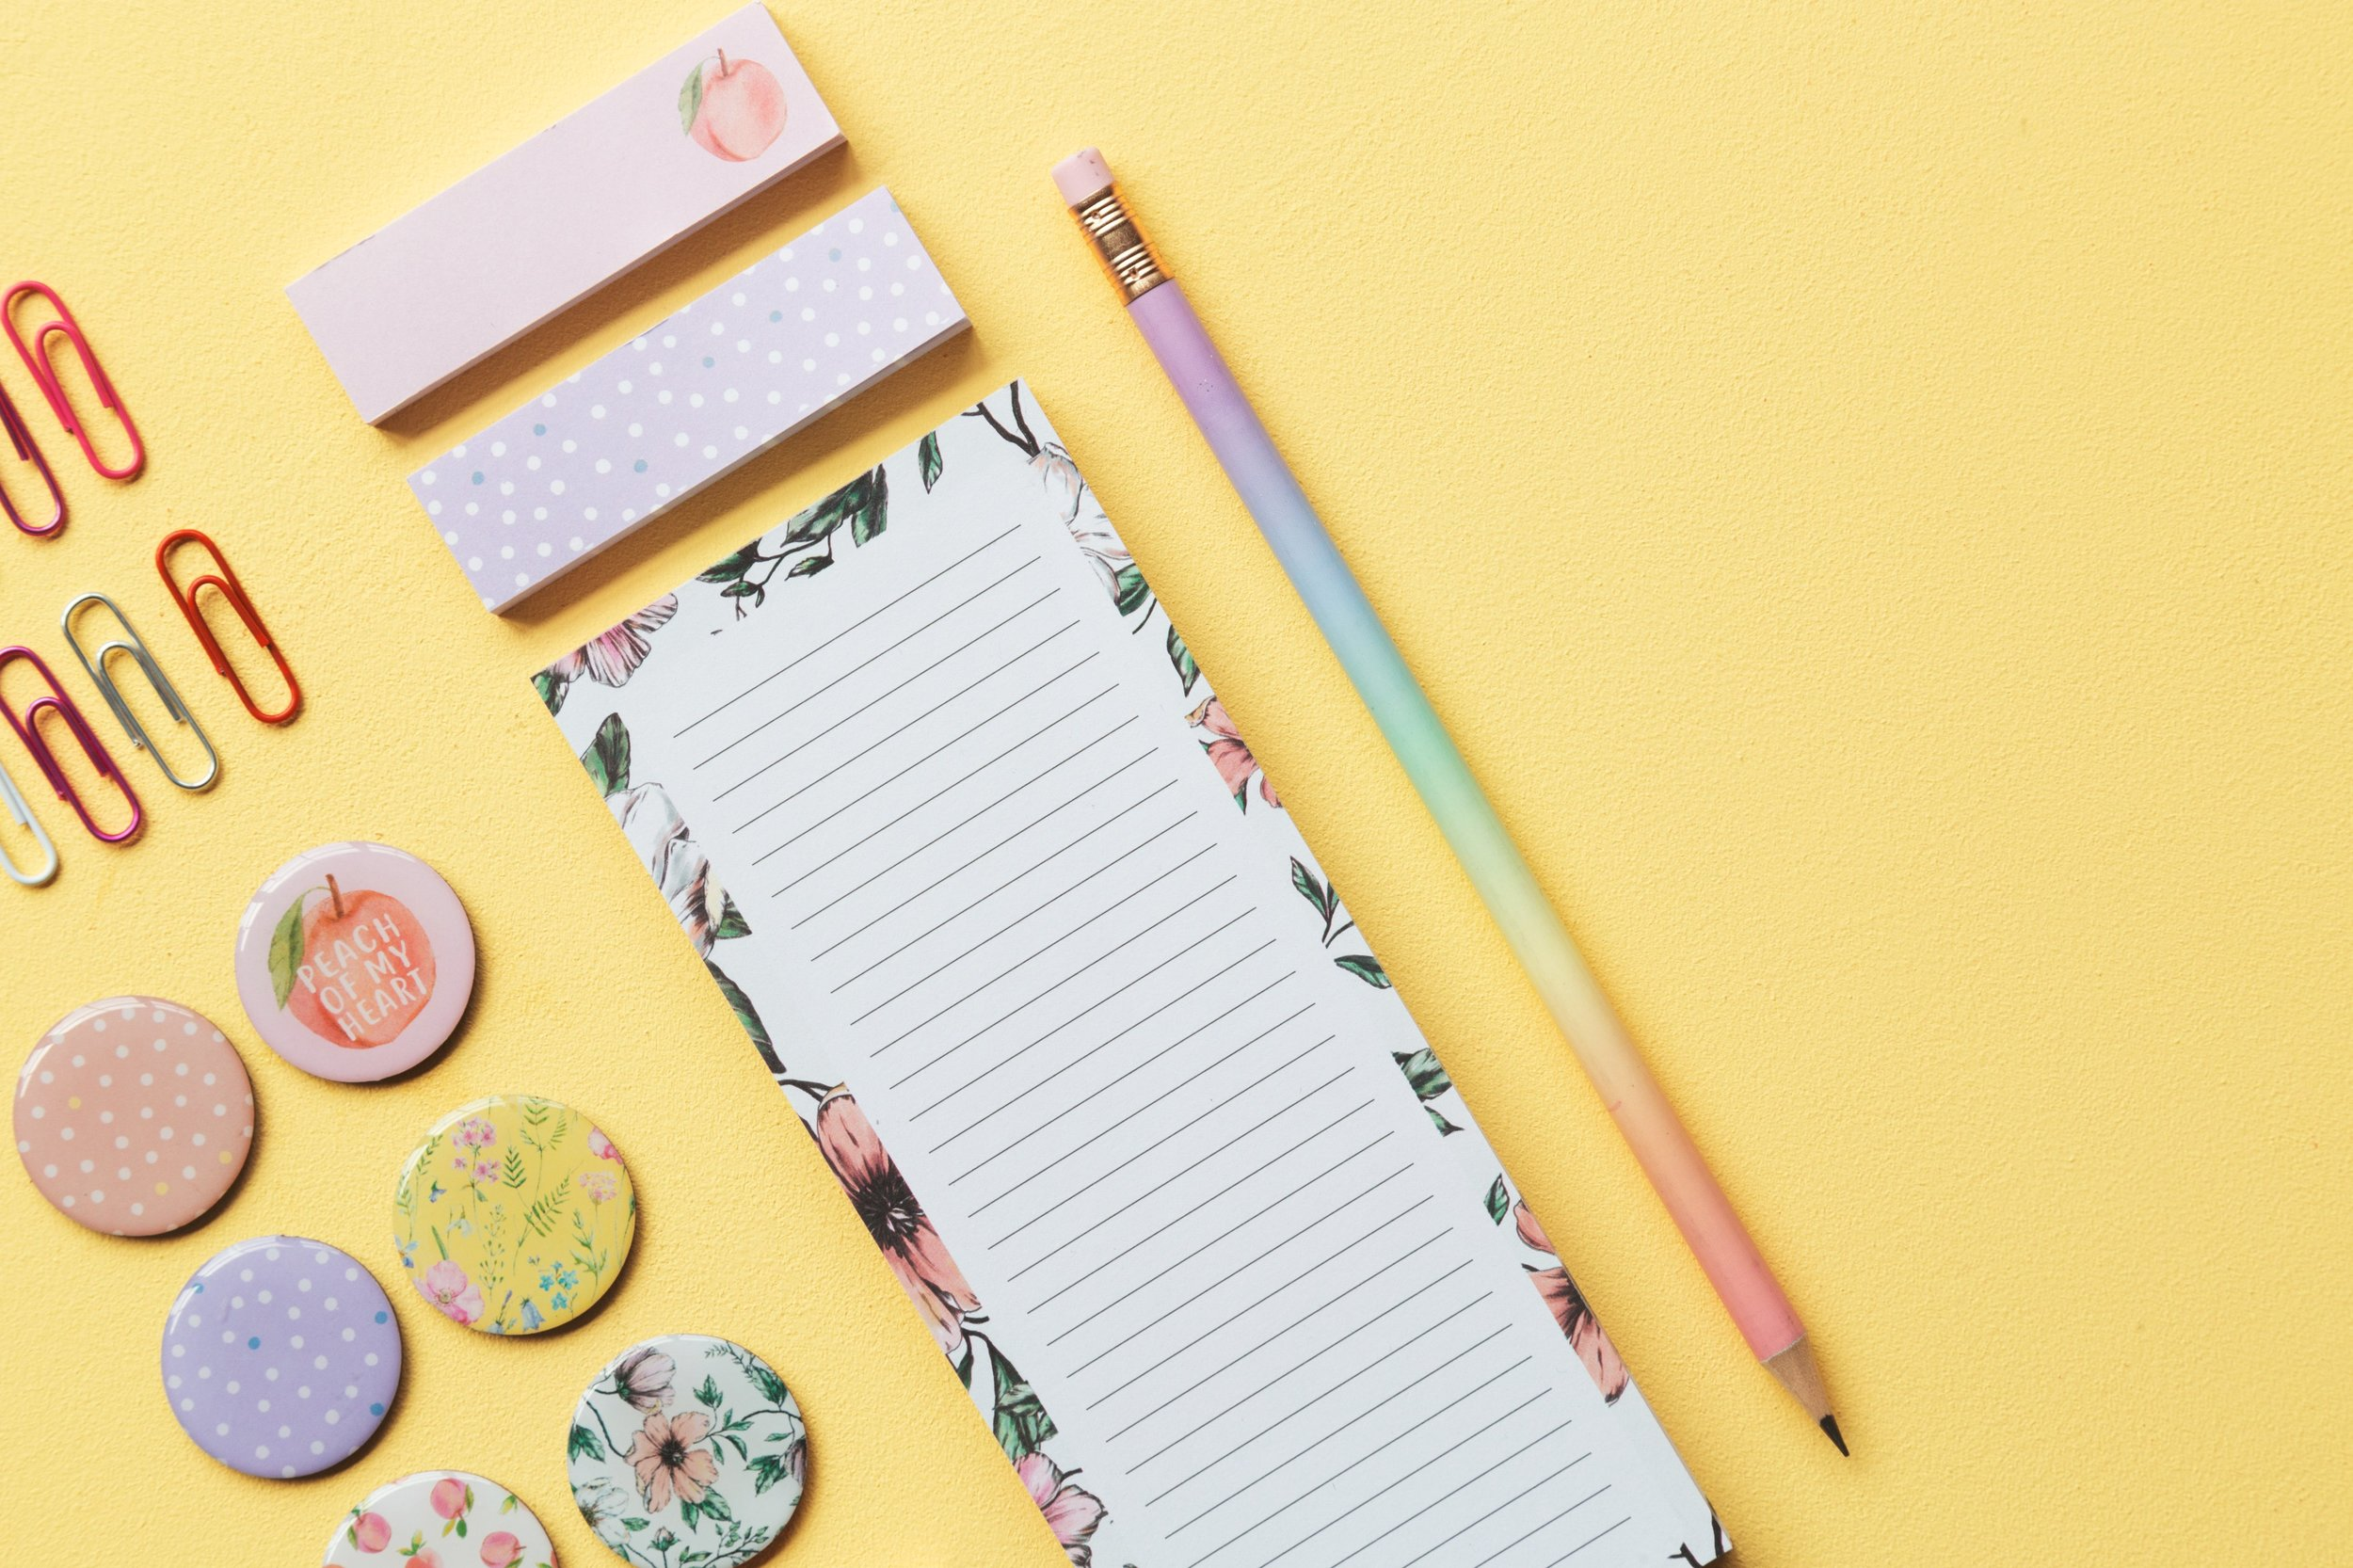 stationery-and-pin-badges.jpg